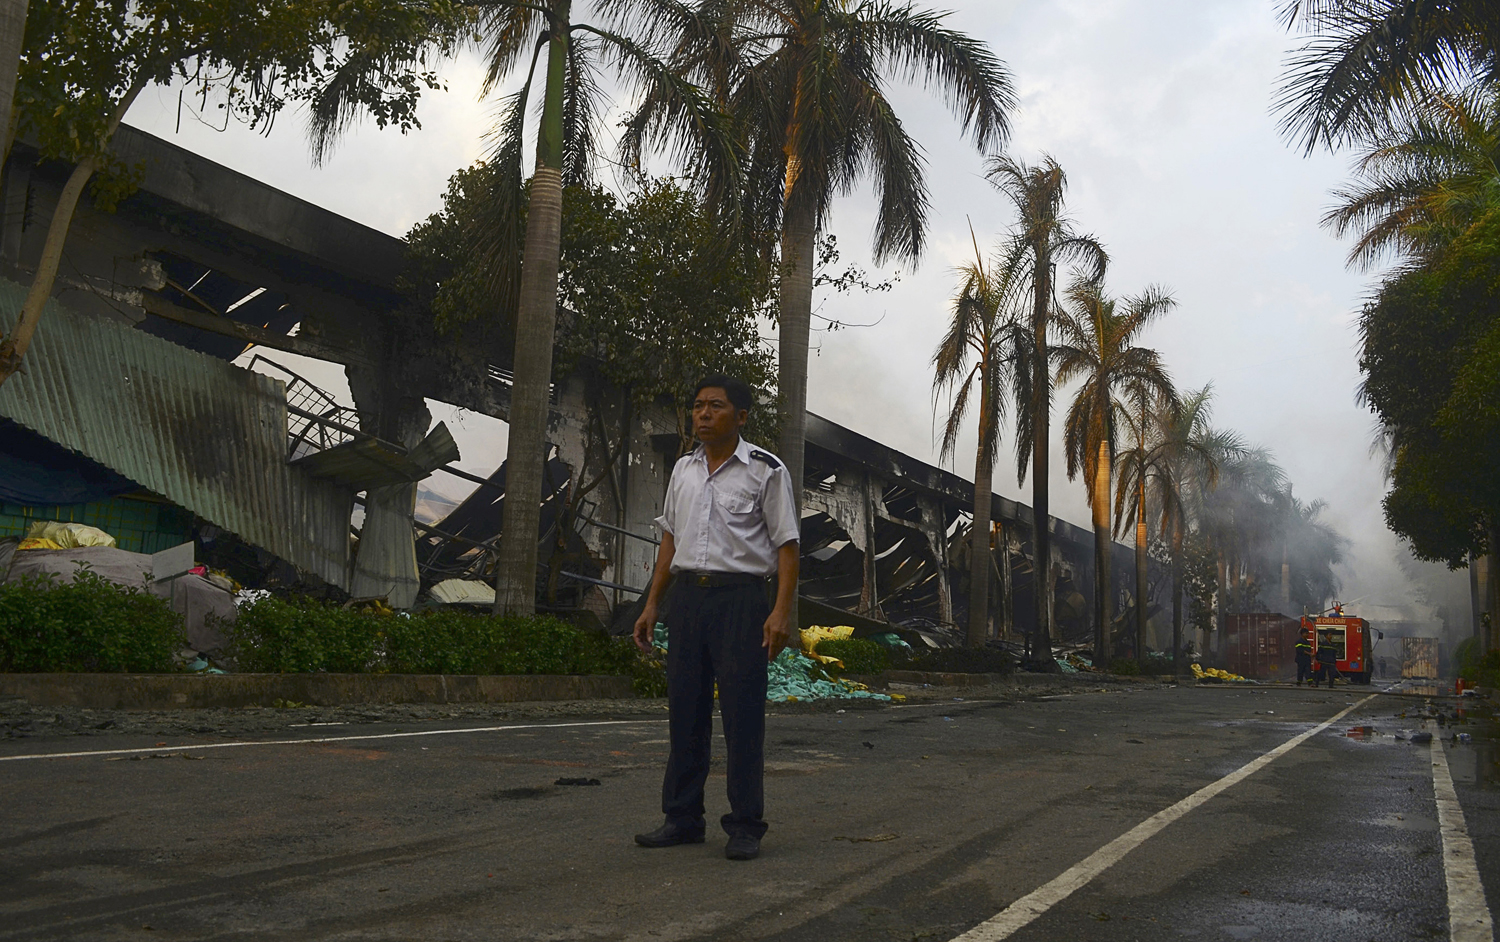 A security guard stands near a damaged Chinese owned shoe factory in Vietnam's southern Binh Duong province May 14, 2014.